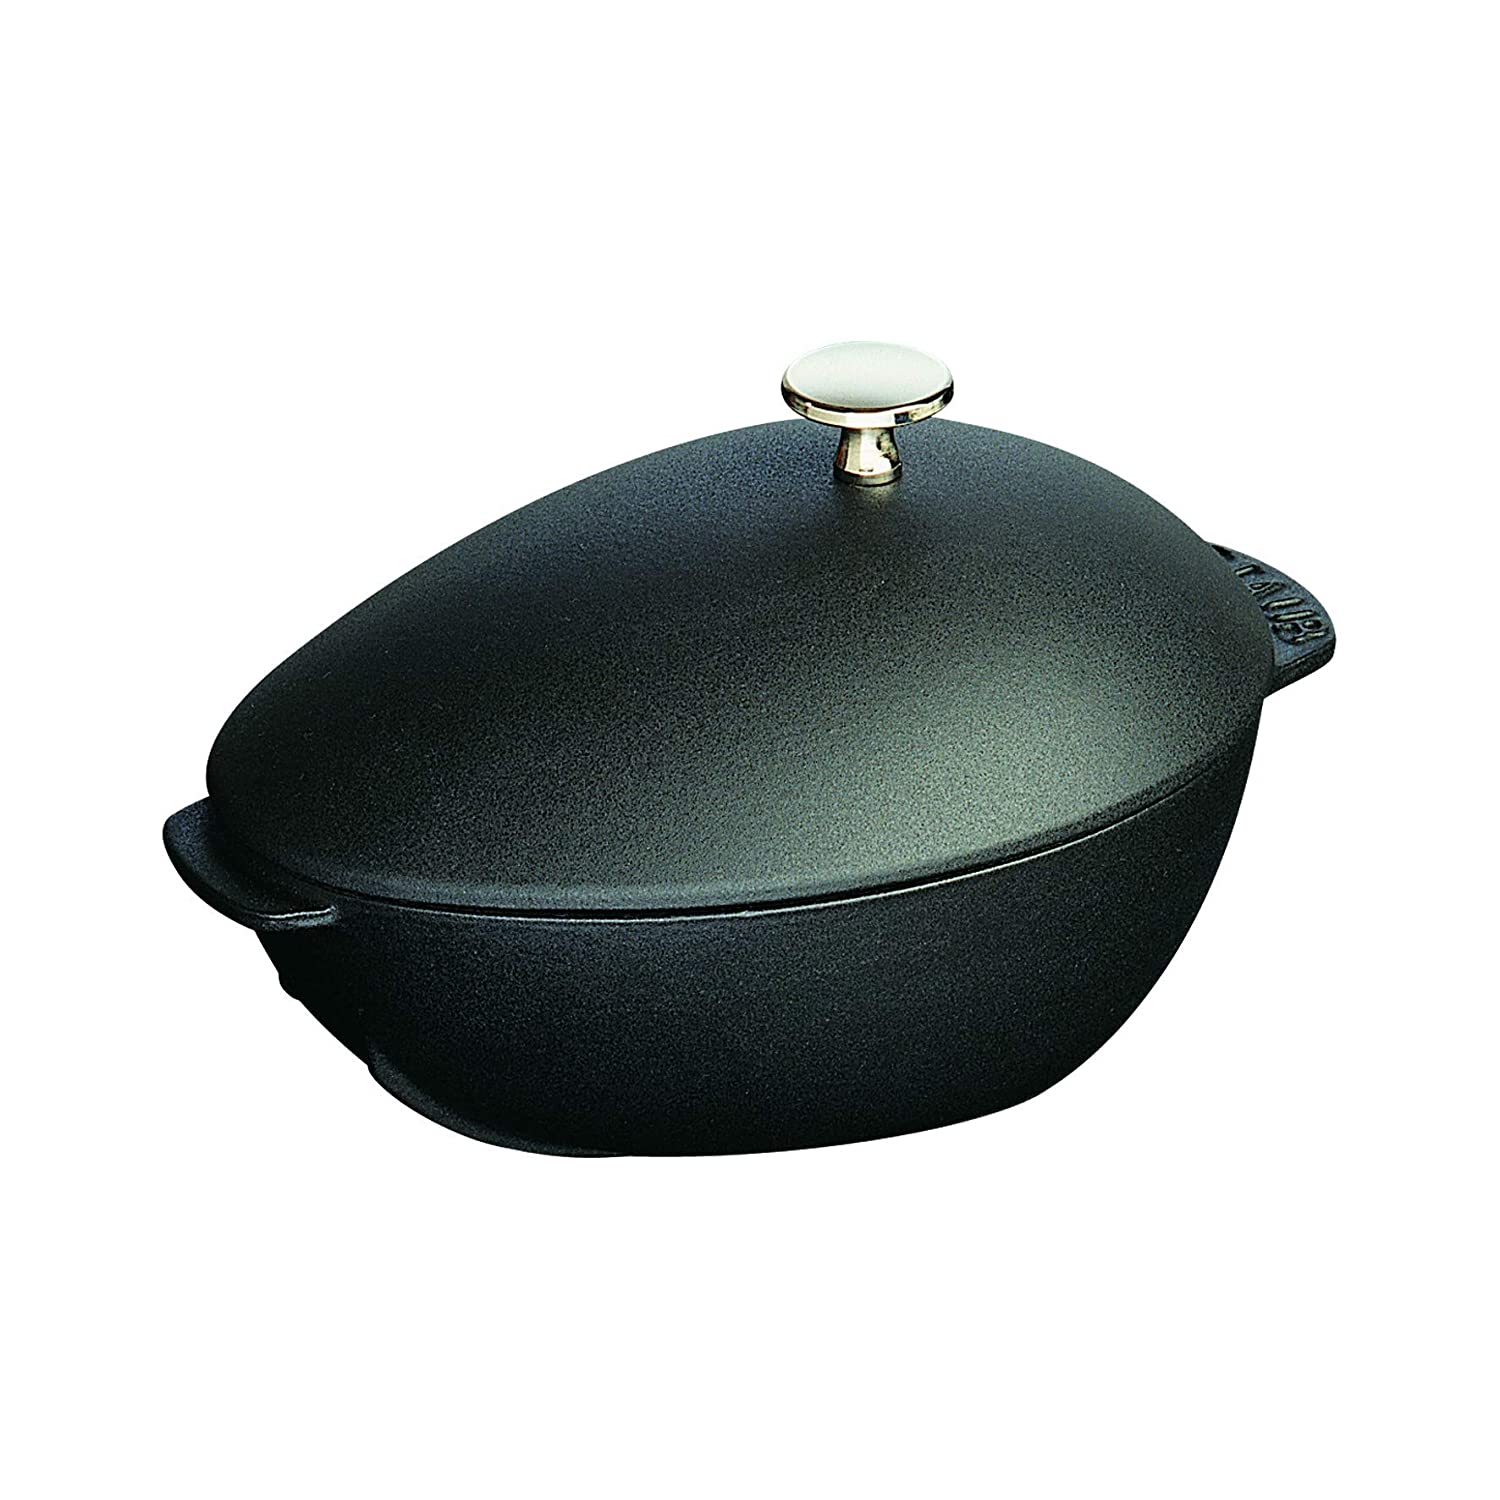 Staub 2 Quart 7 x 9 1/2 inch Mussel Pot with Stainless Steel Knob, Black Matte